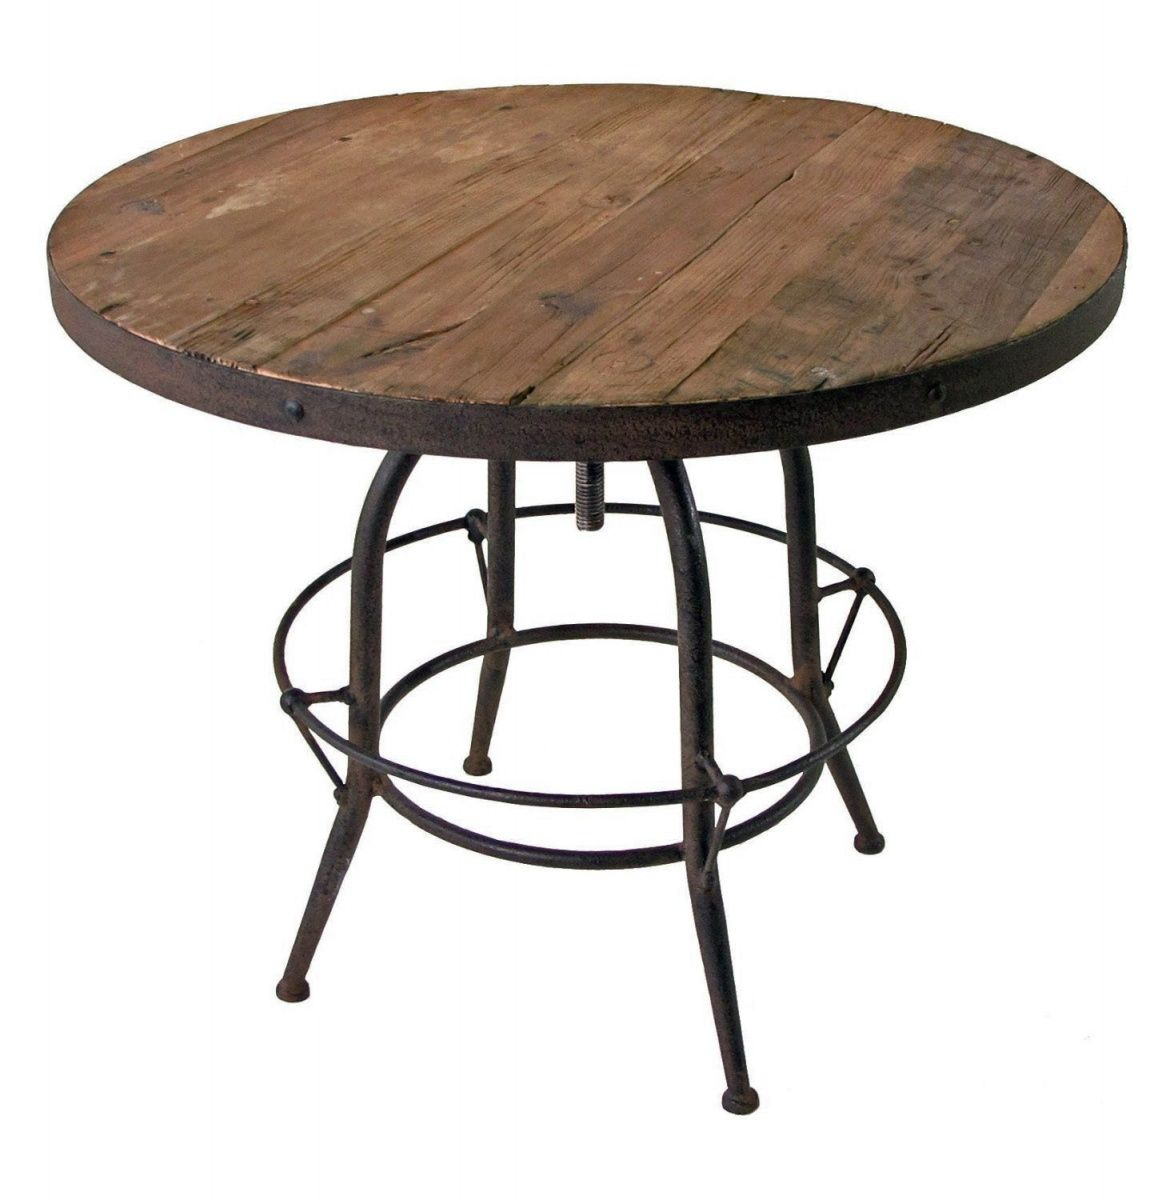 Wrought iron table legs Home Depot looks superb in high ...